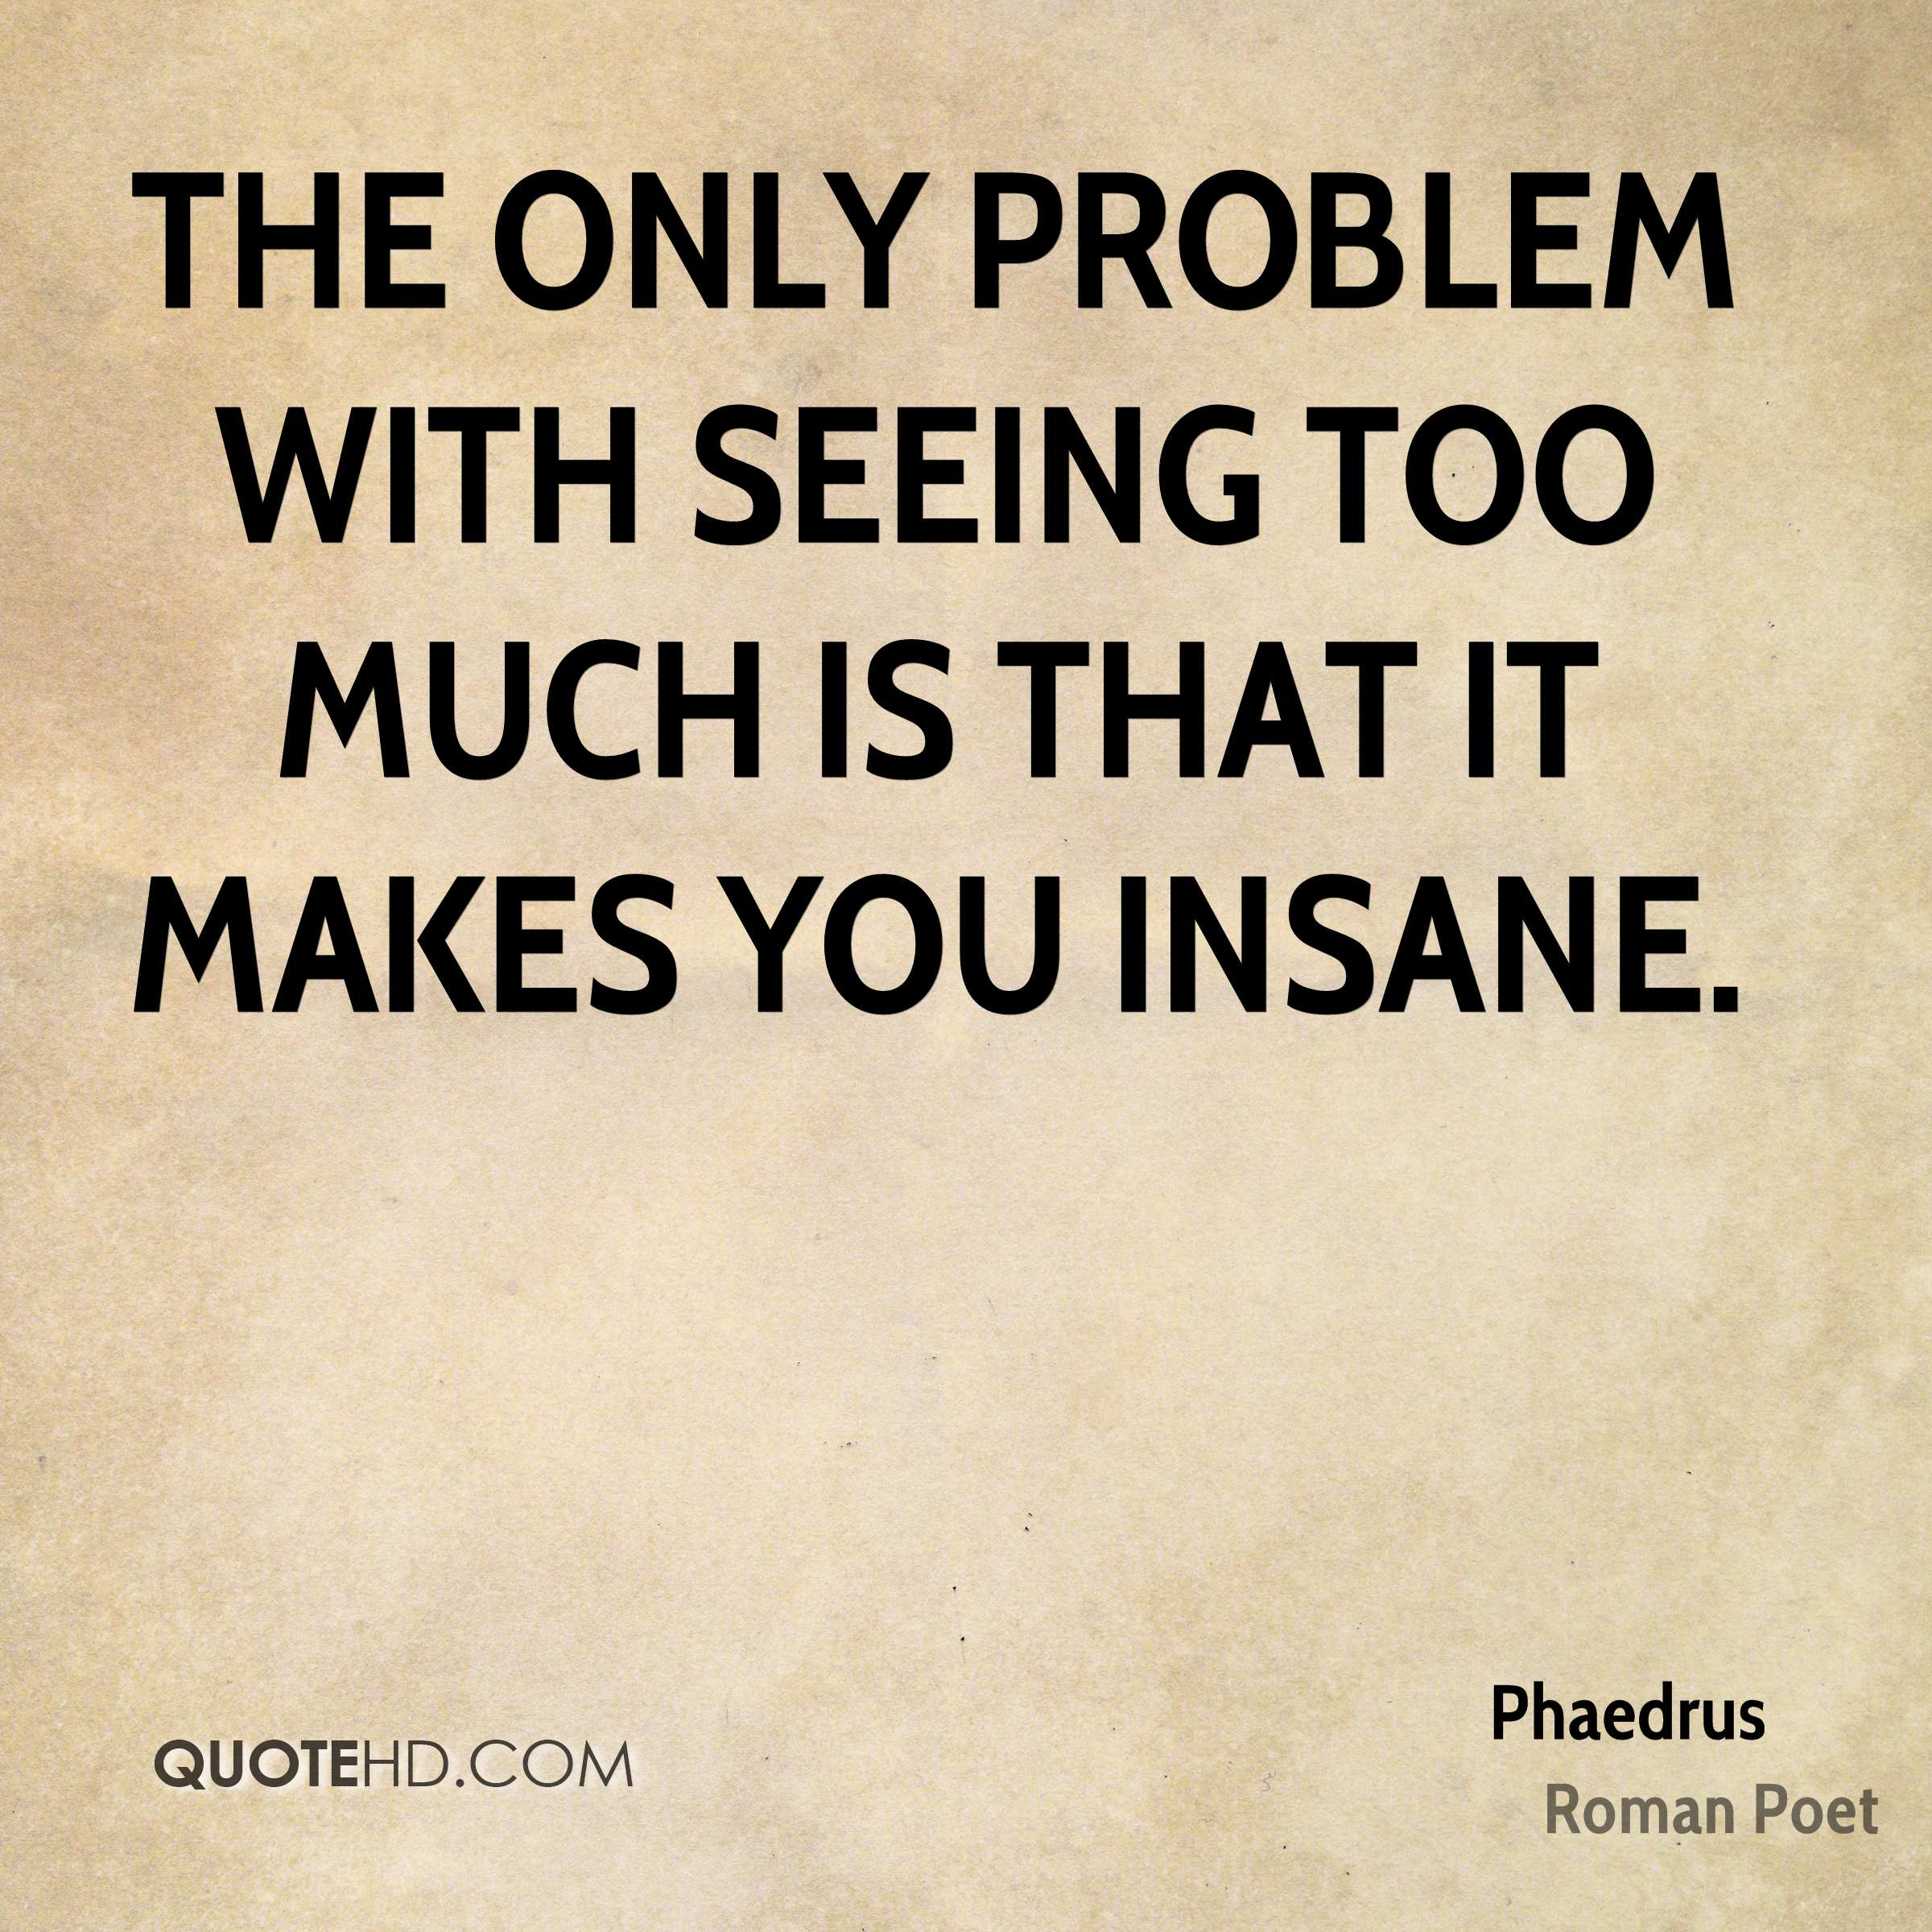 The only problem with seeing too much is that it makes you insane.